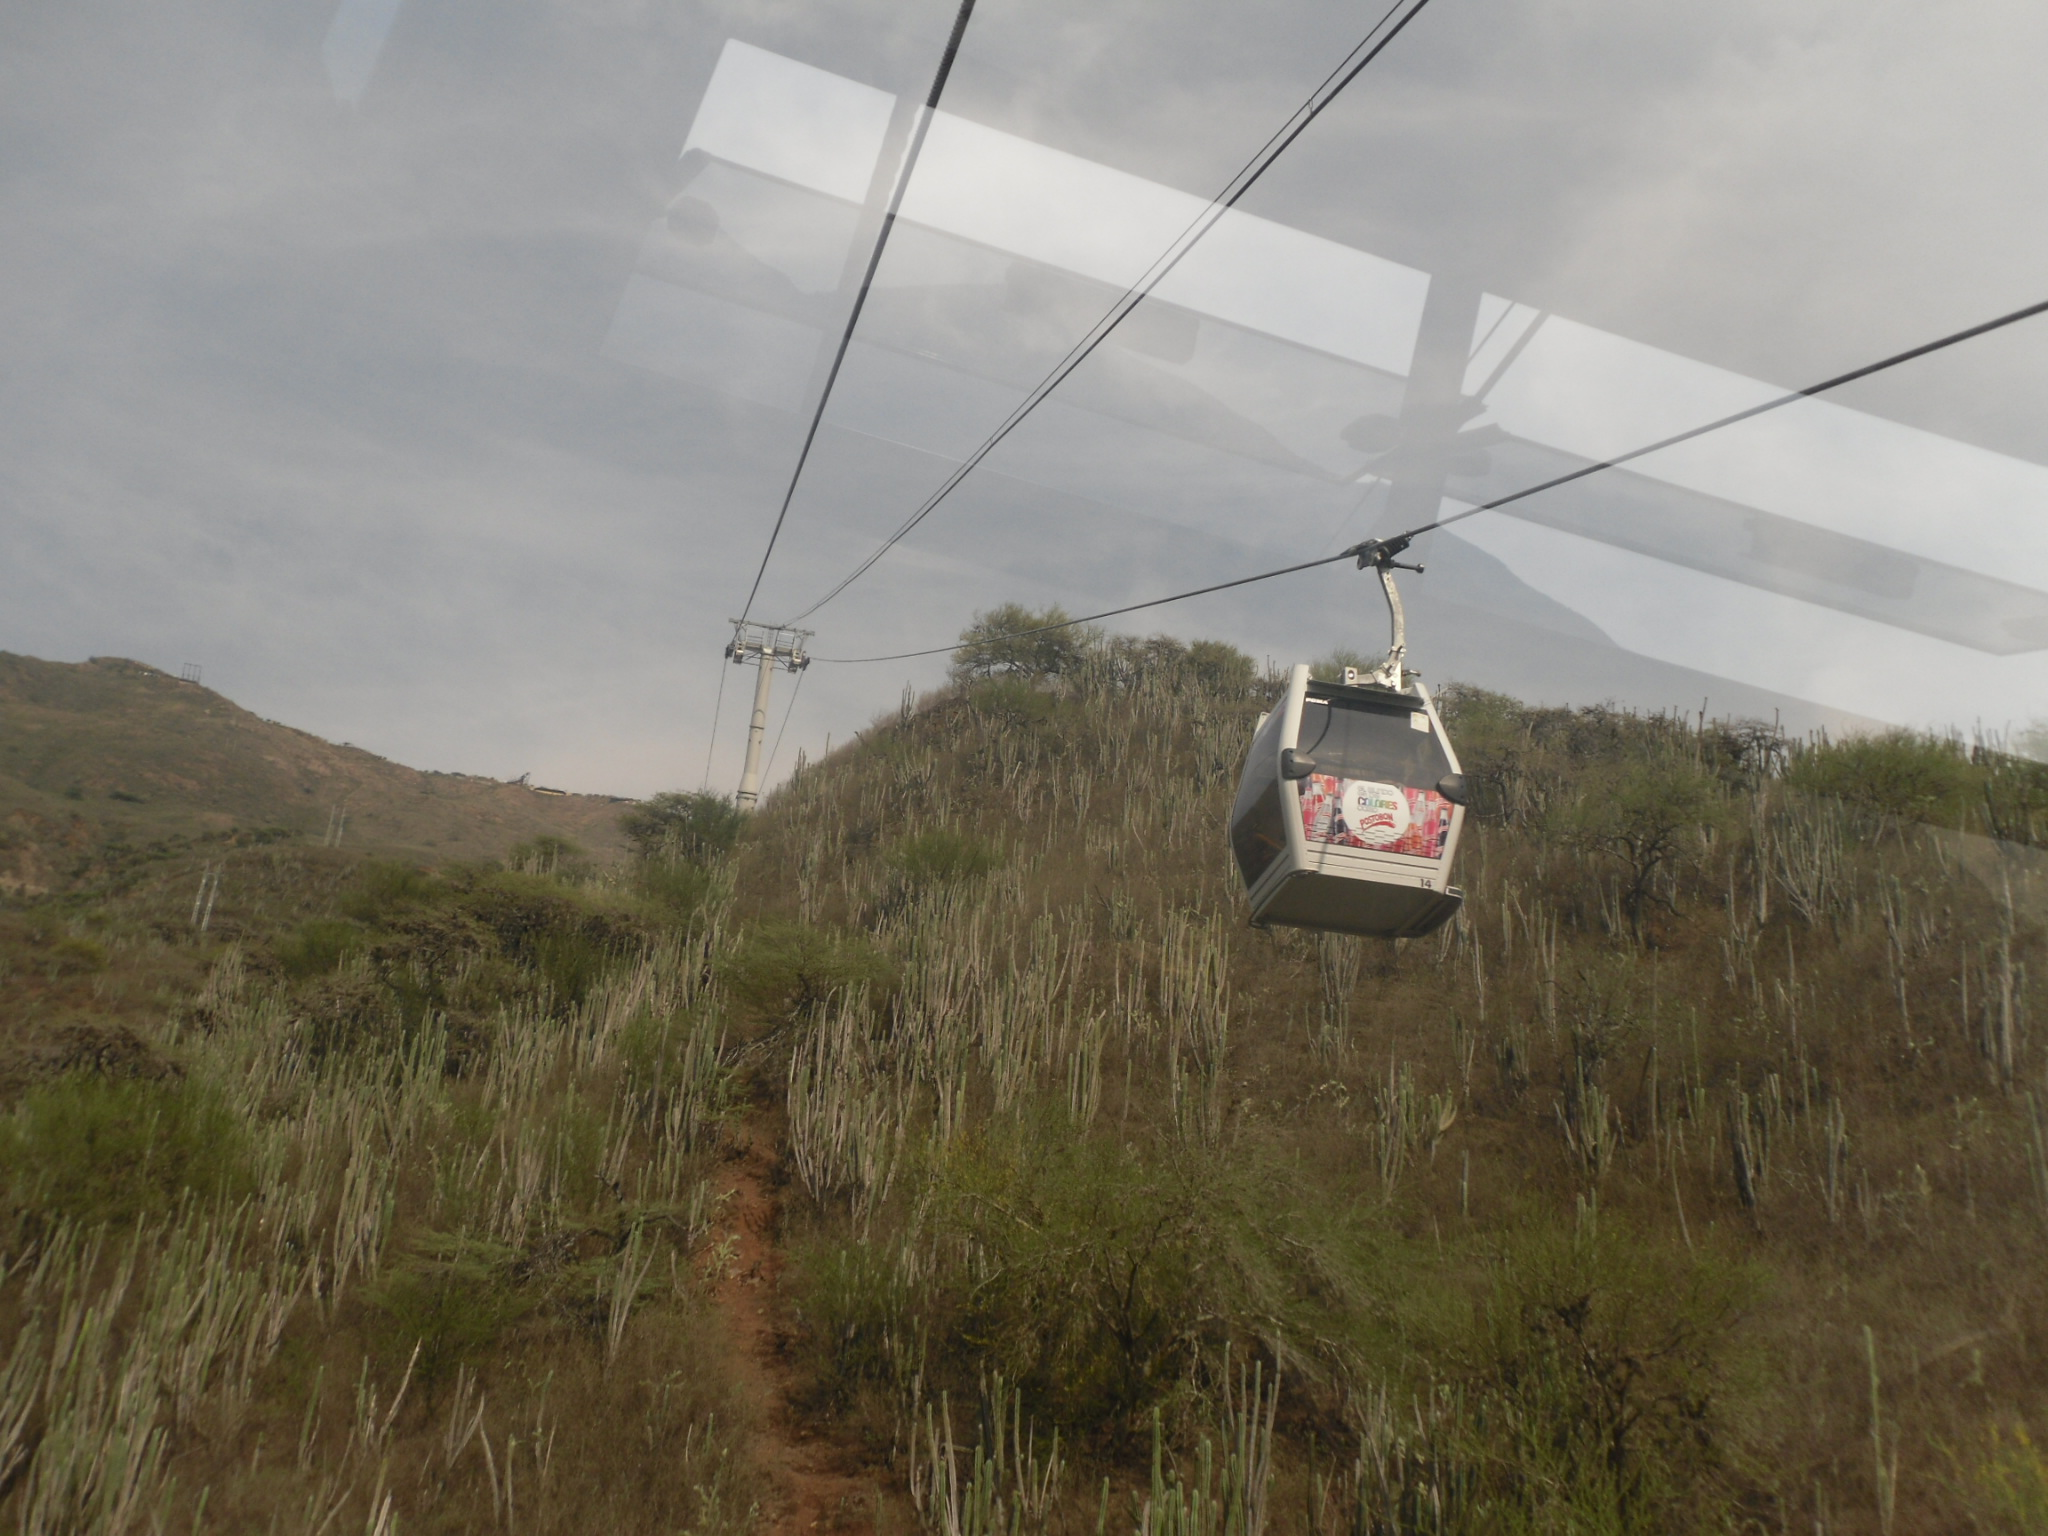 Tram ride in the Chicamocha canyon enroute to Barichara Colombia